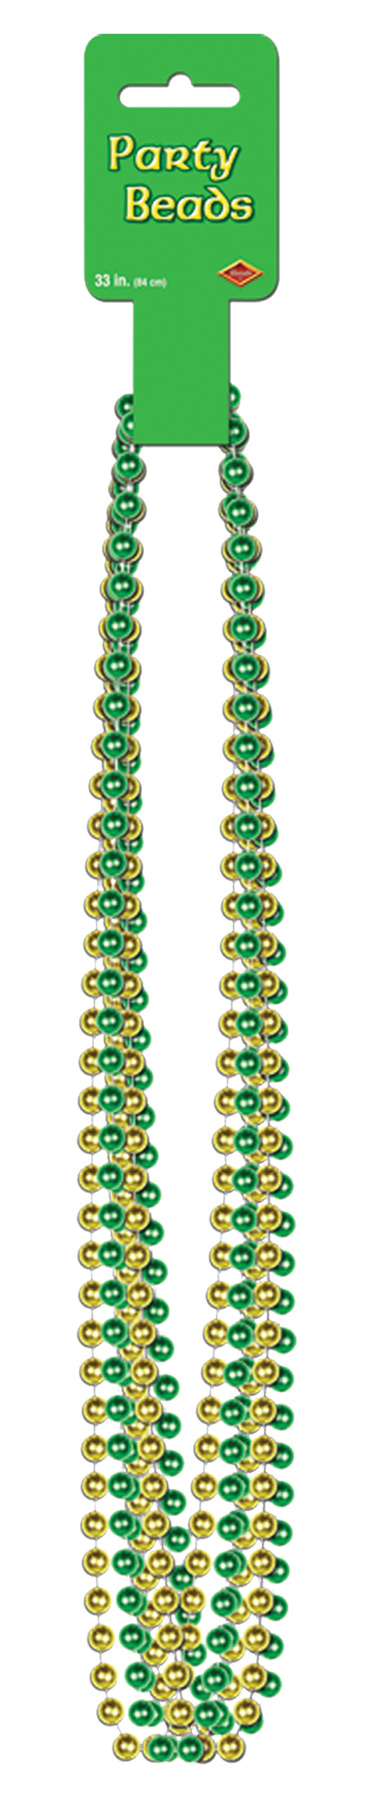 Featured Image for Party Beads Small Round